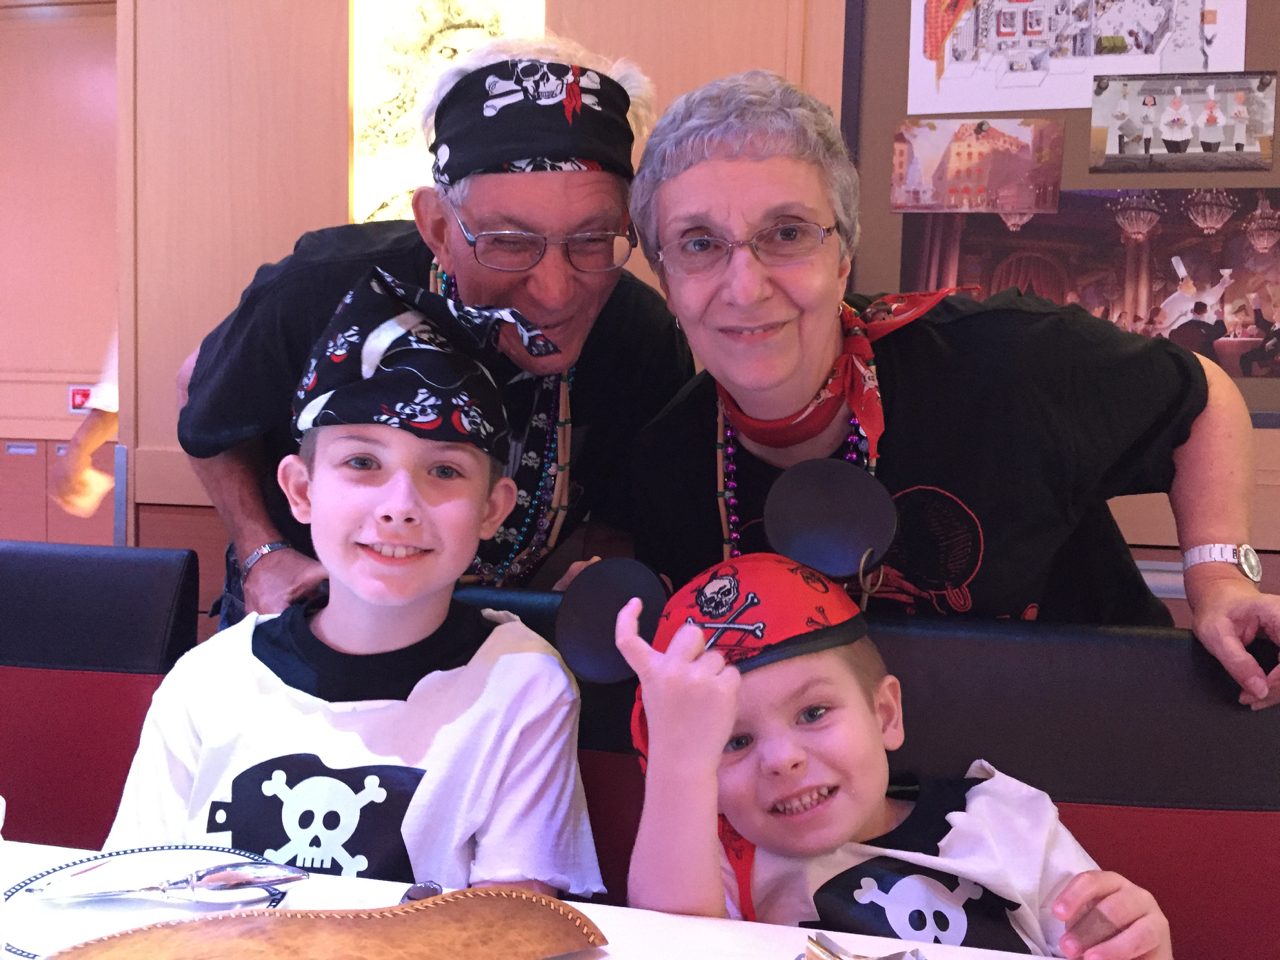 Disney Fantasy Cruise - Tortola Pirate Night Dinner